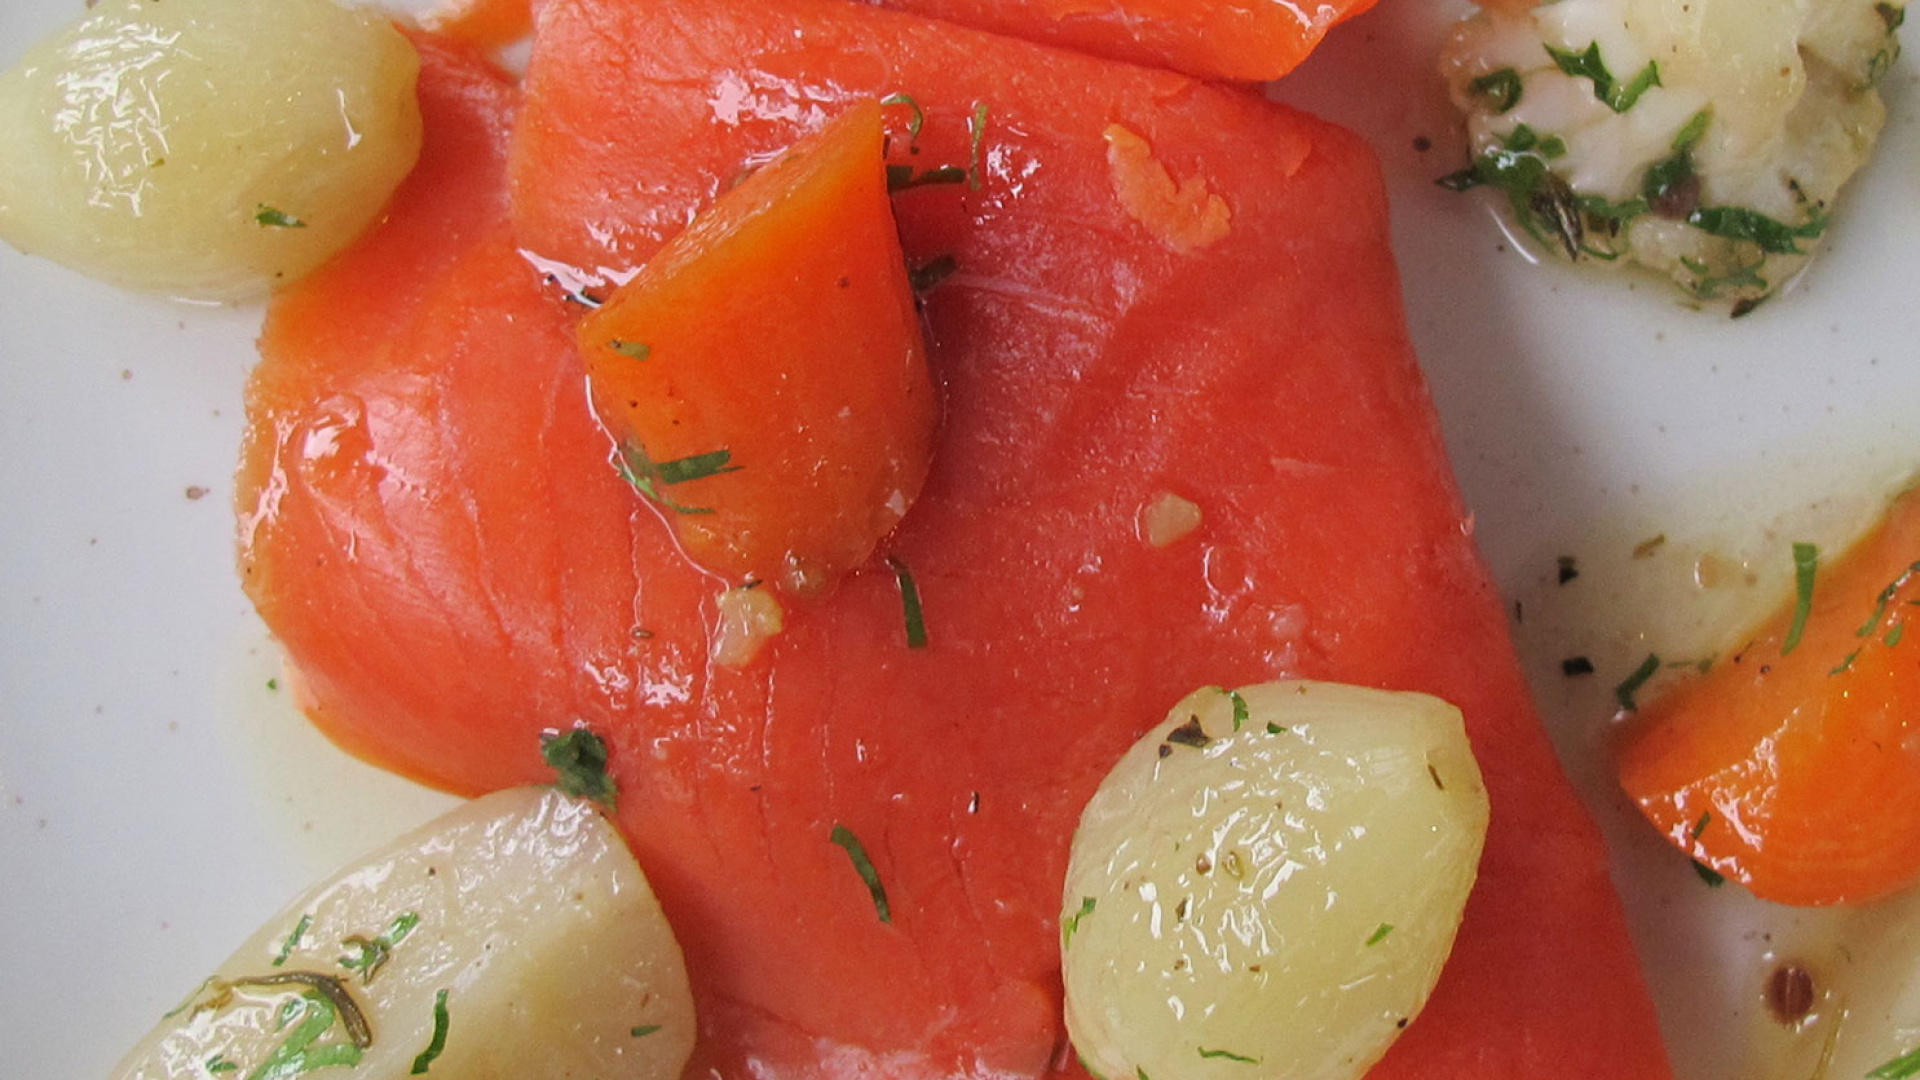 The Ninth smoked salmon with pickled veg